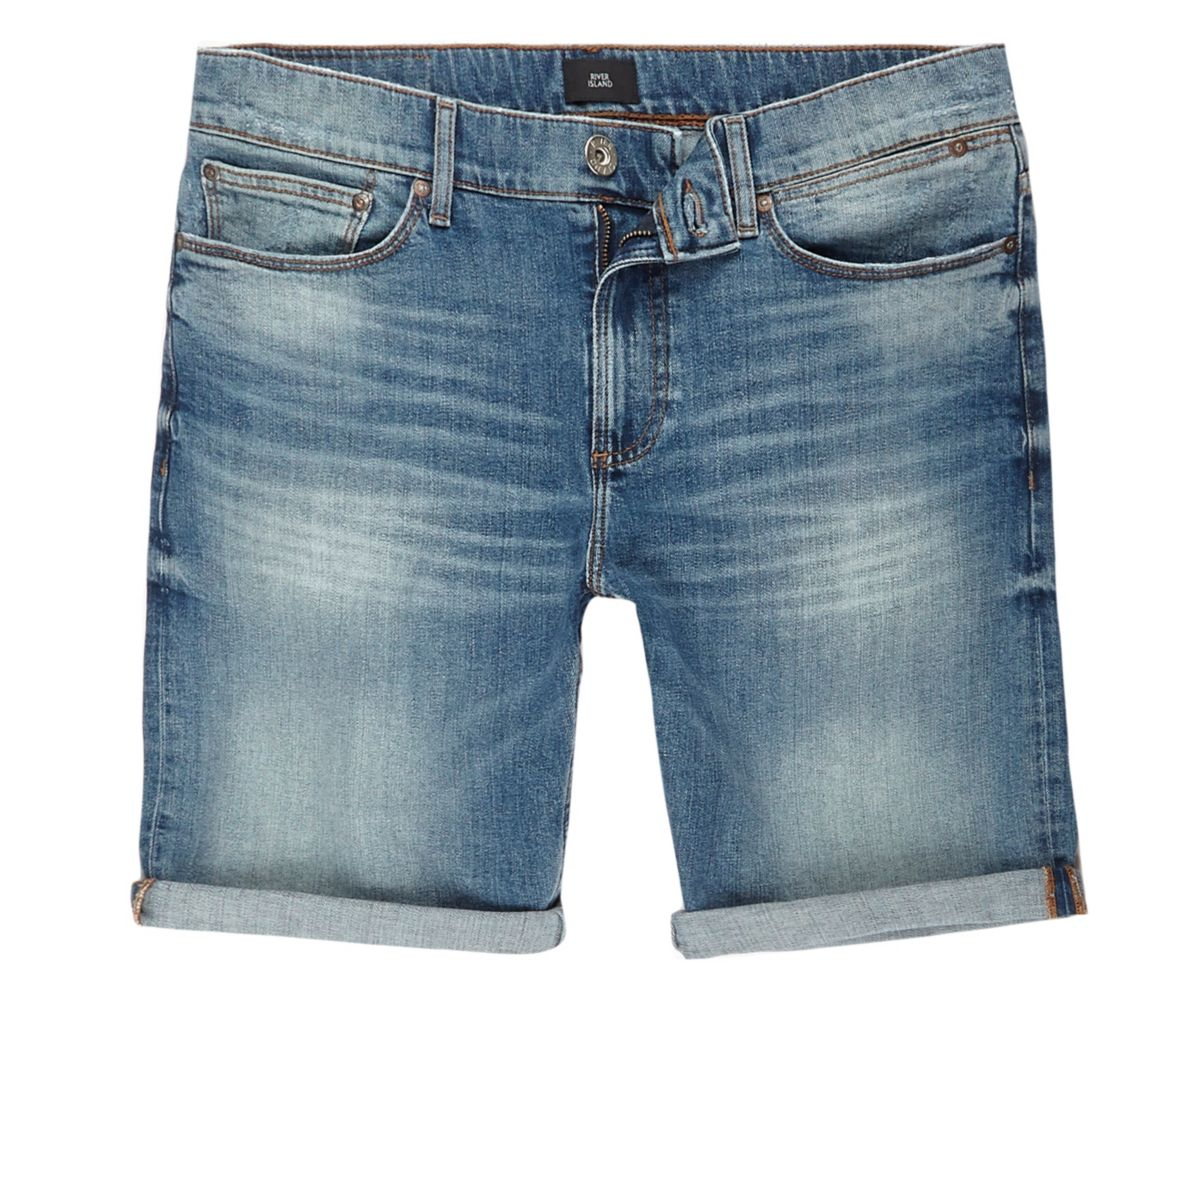 Blue skinny green cast denim shorts